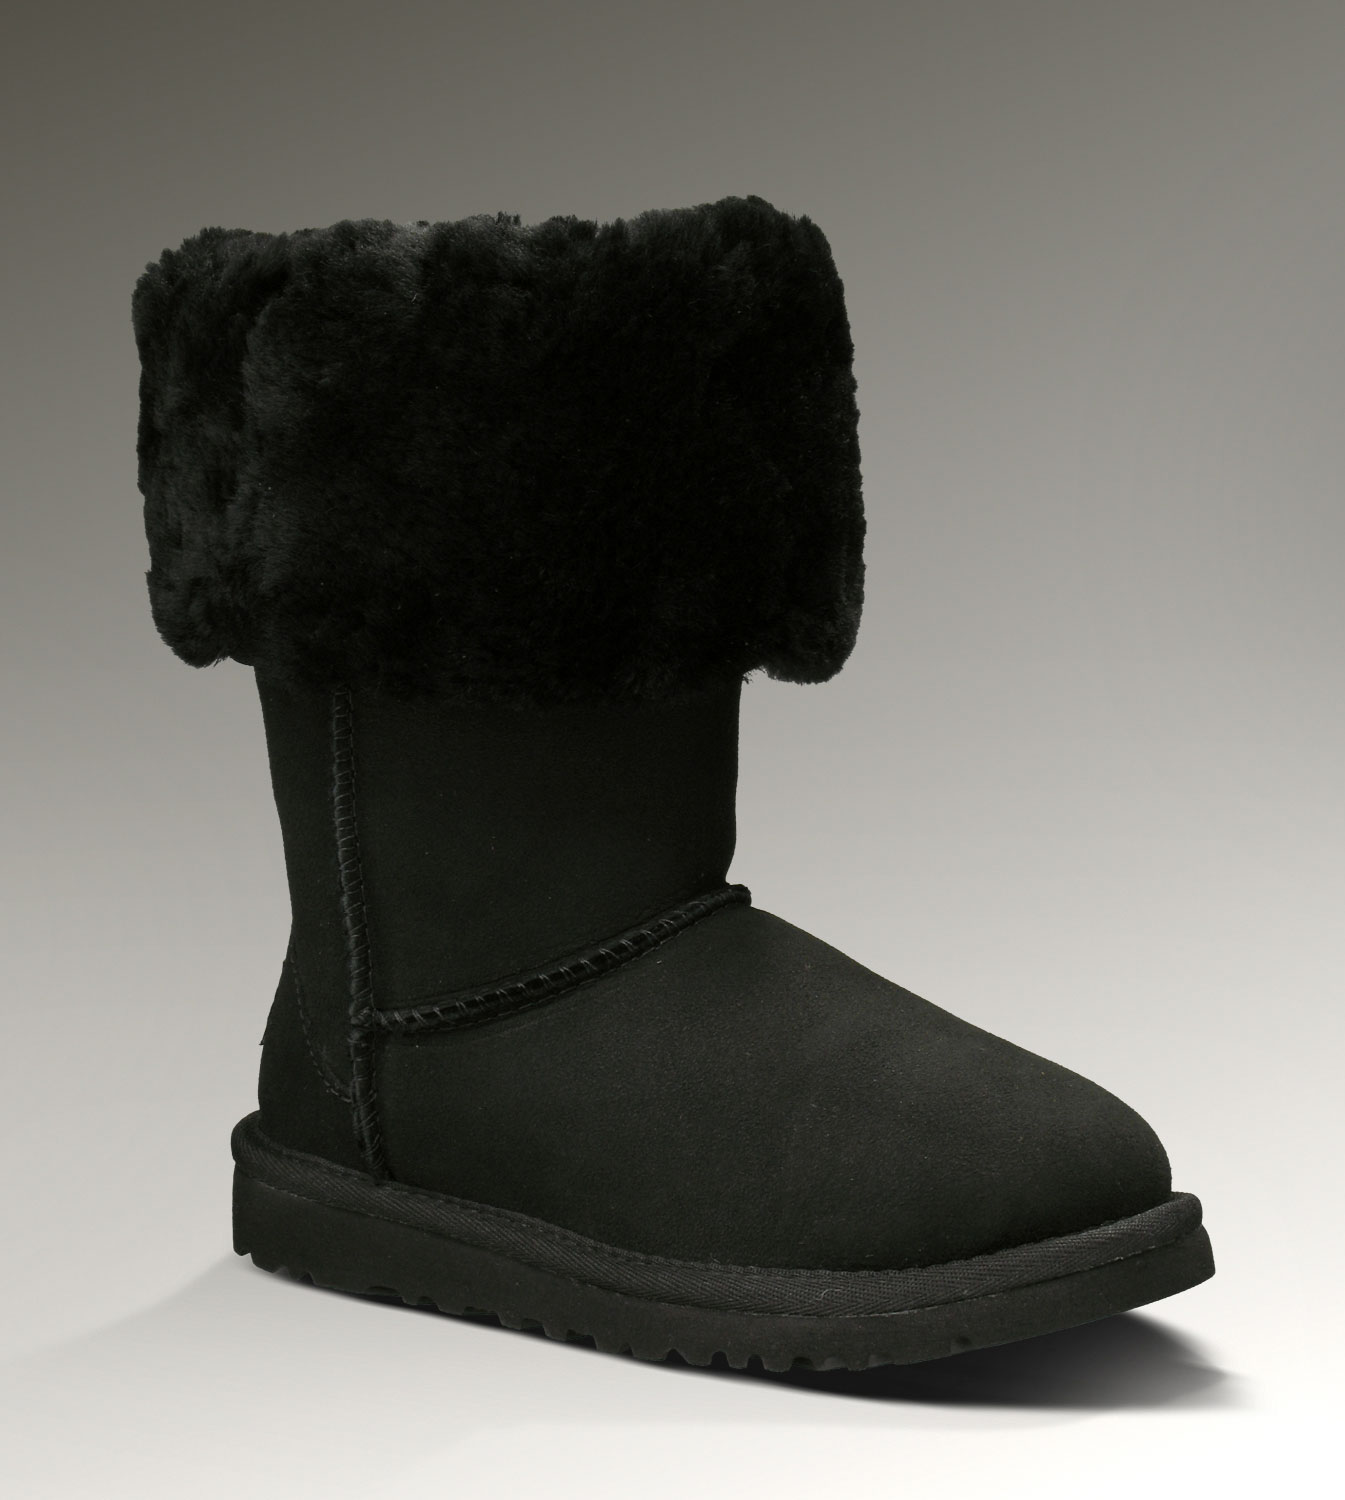 UGG Classic Tall 5229 Black Boots